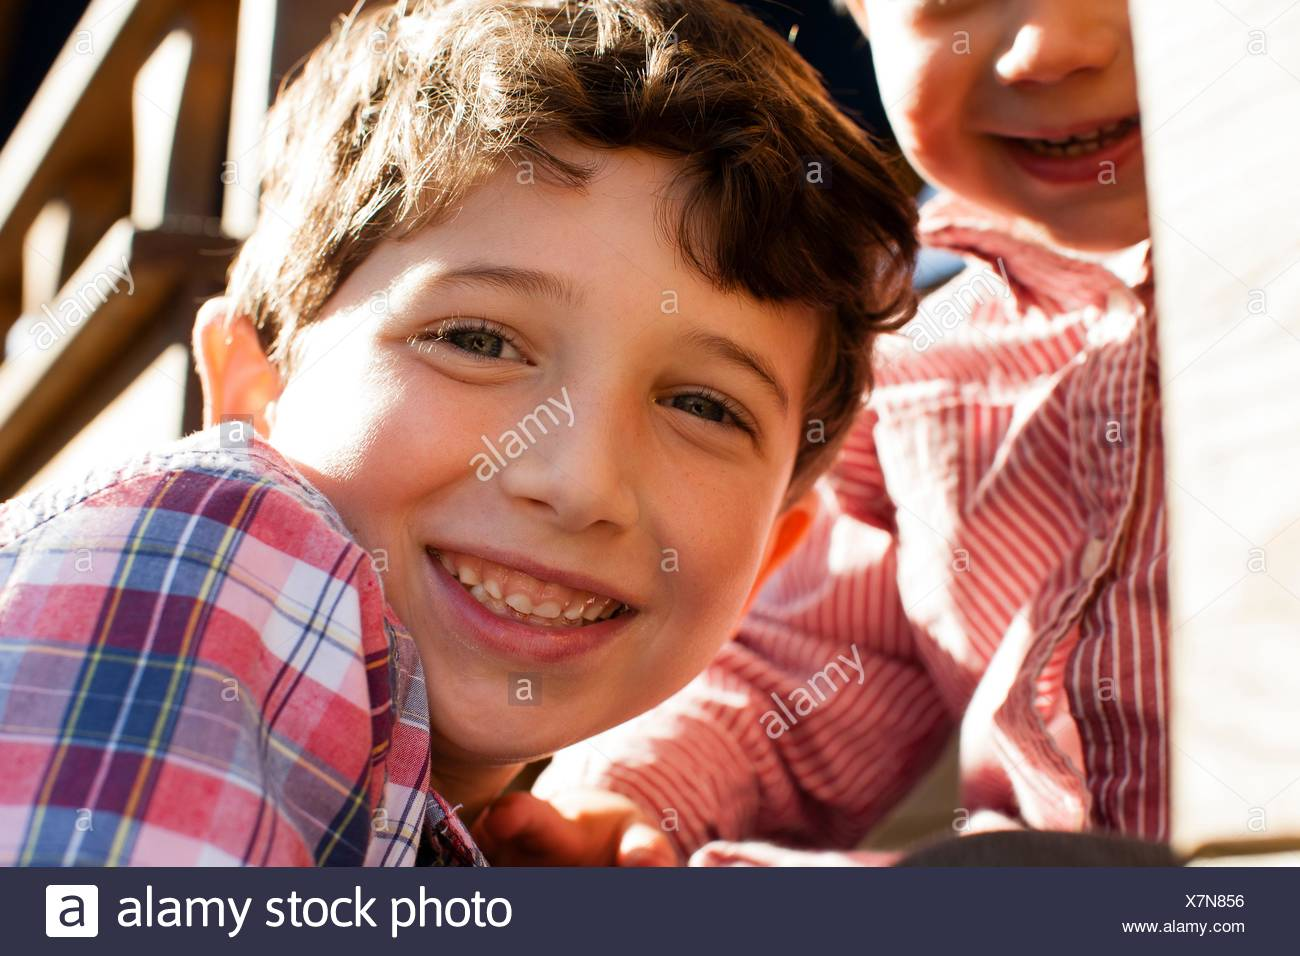 Close up of boy with big brother looking at camera smiling Stock Photo